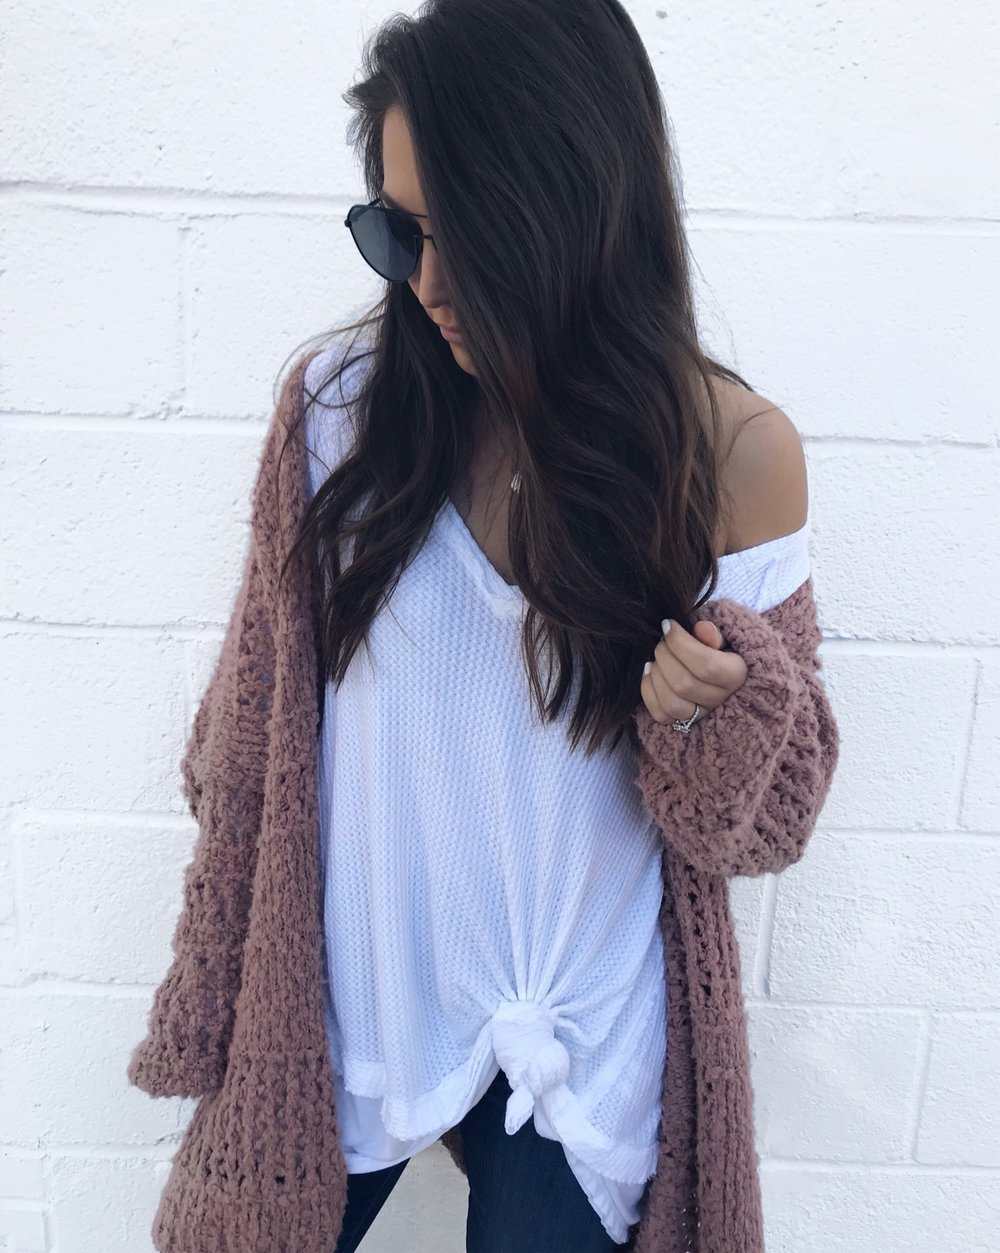 fall fashion / fall outfit idea / fall outfit inspiration / fall feels / fall vibes / sweater weather / fall layers / white thermal + blush cardigan